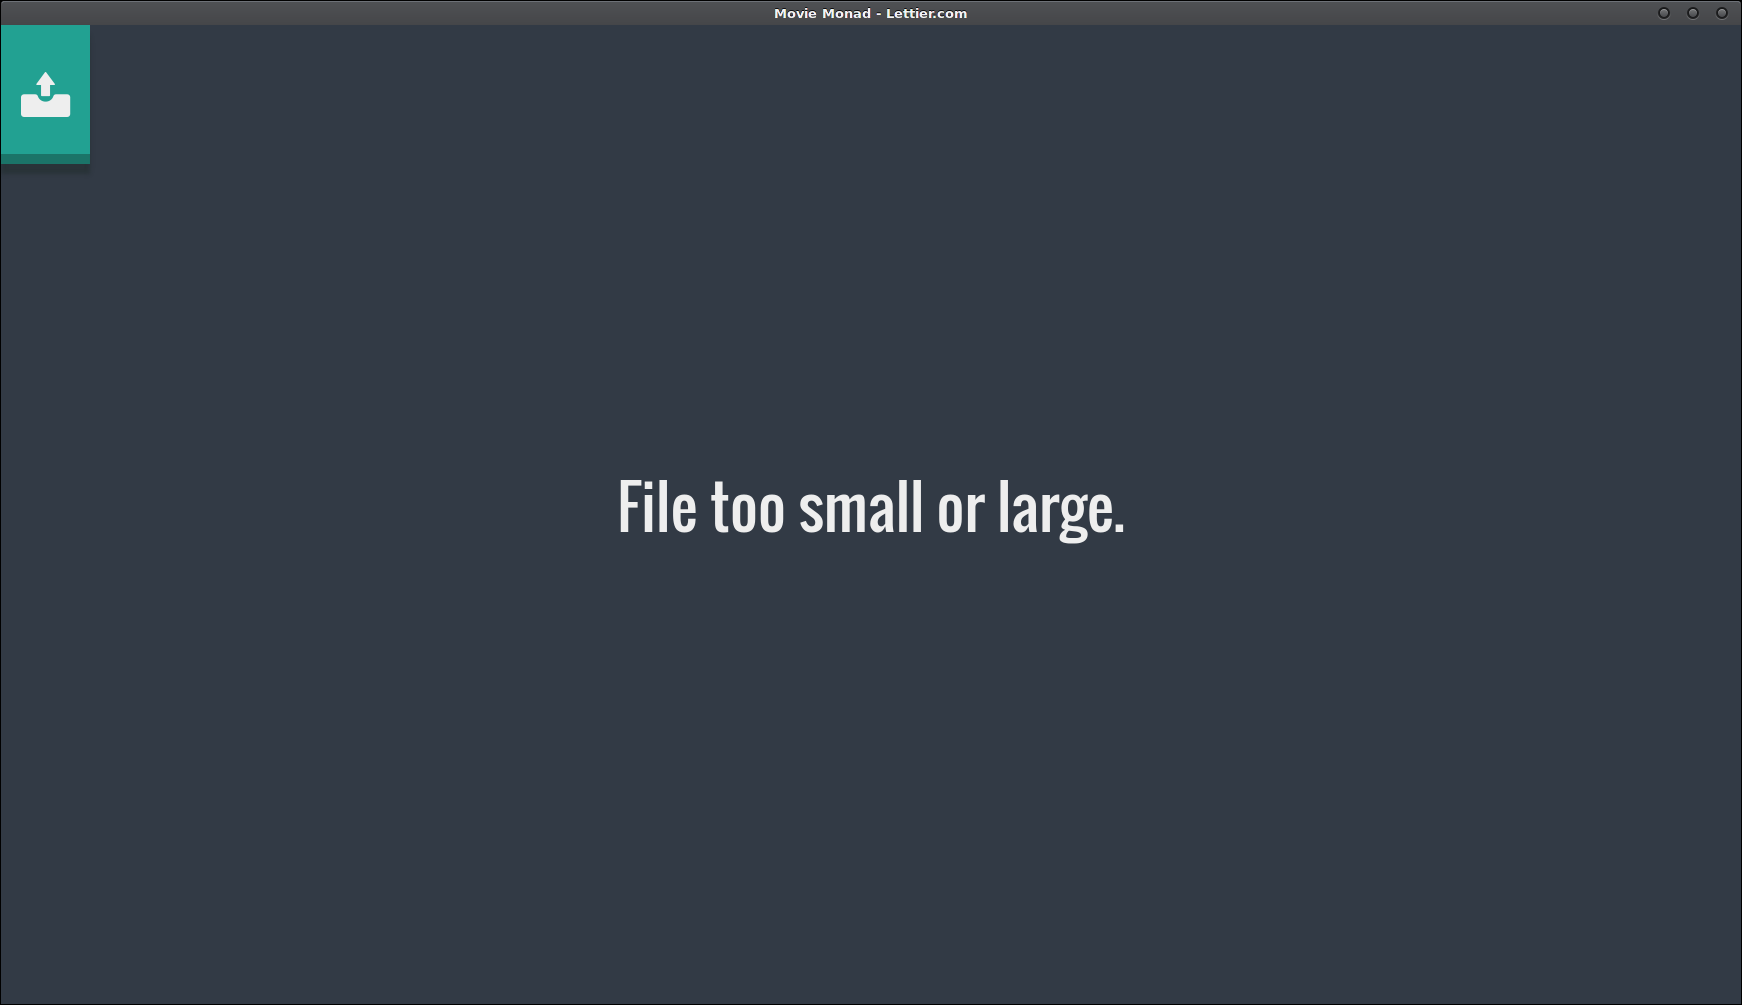 File is too small or large.